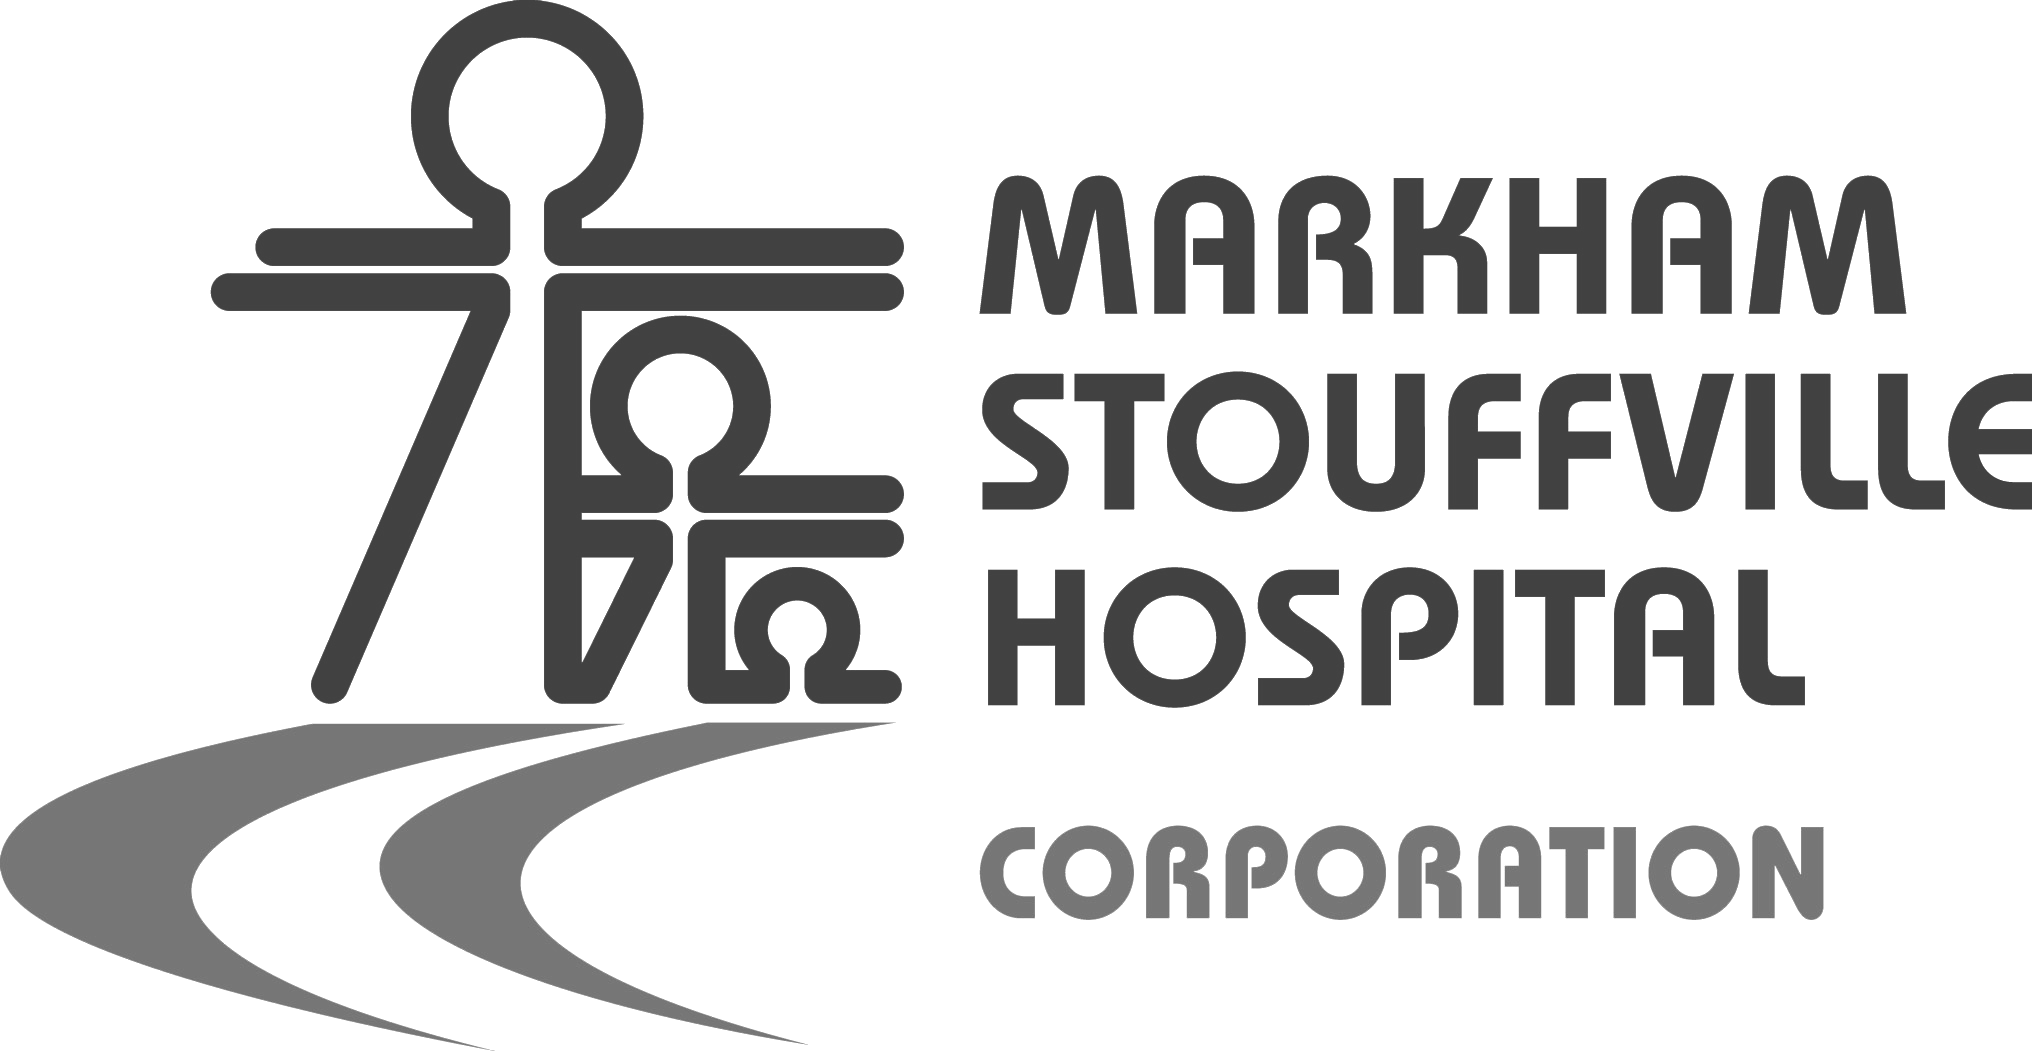 Spectrum: Local Antimicrobial Stewardship, for Markham Stouffville Hospital